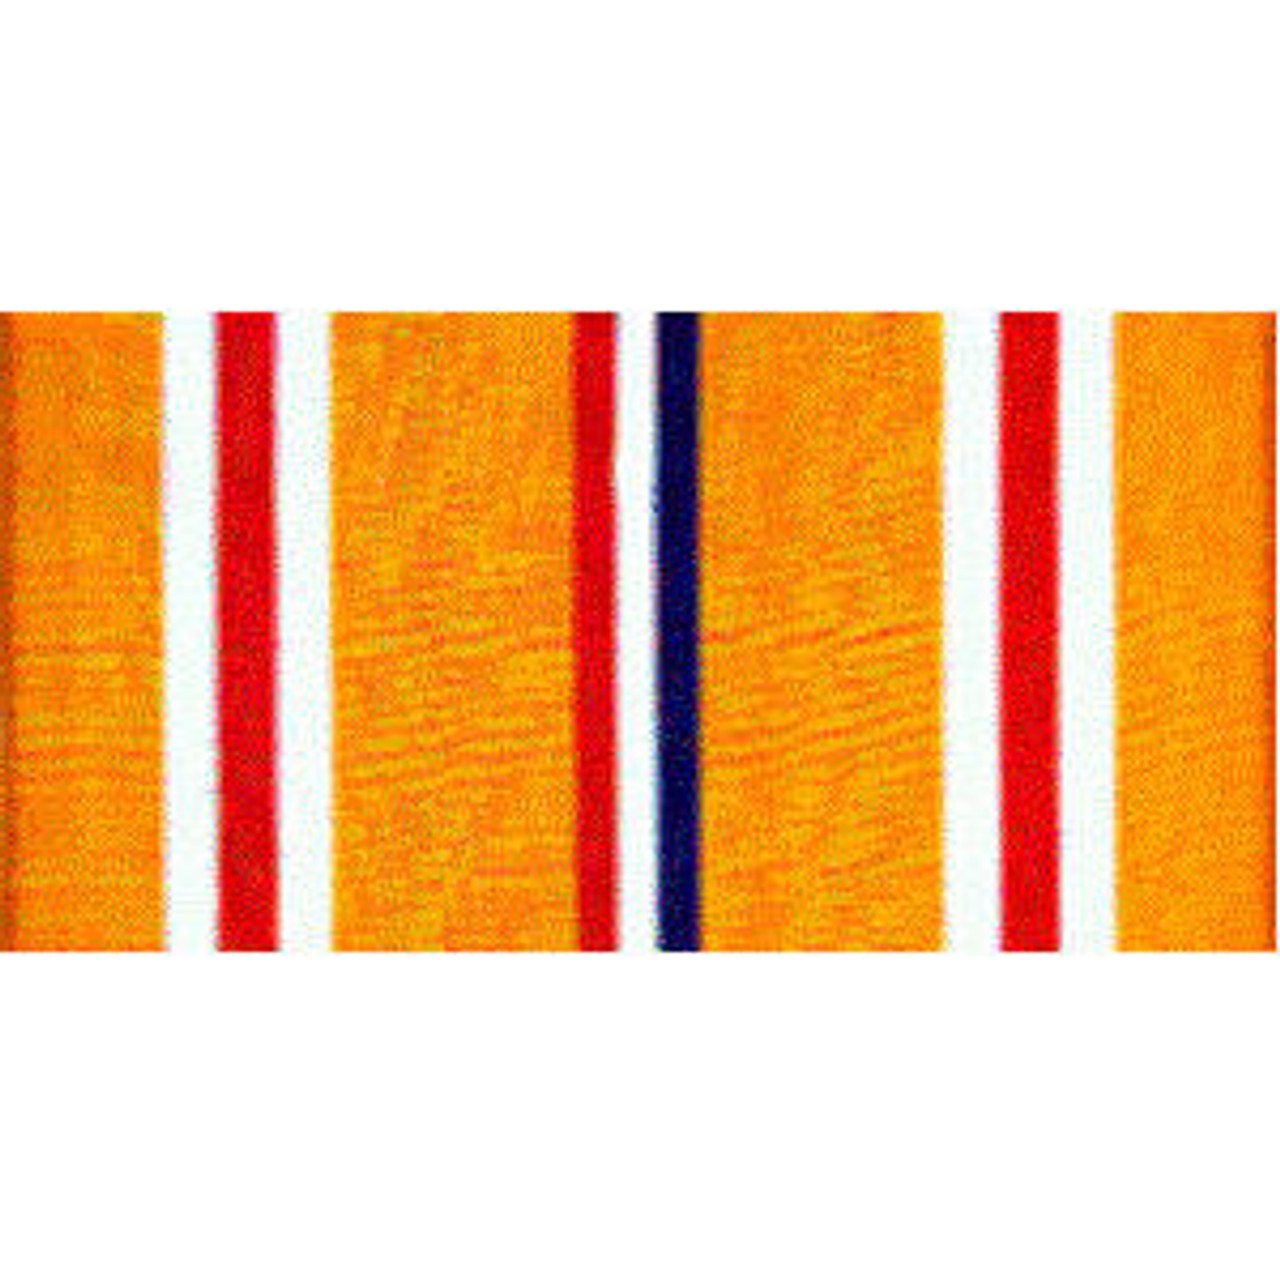 Asiatic Pacific Campaign Streamer. Orange, white, and red stripes with blue stripe at center.